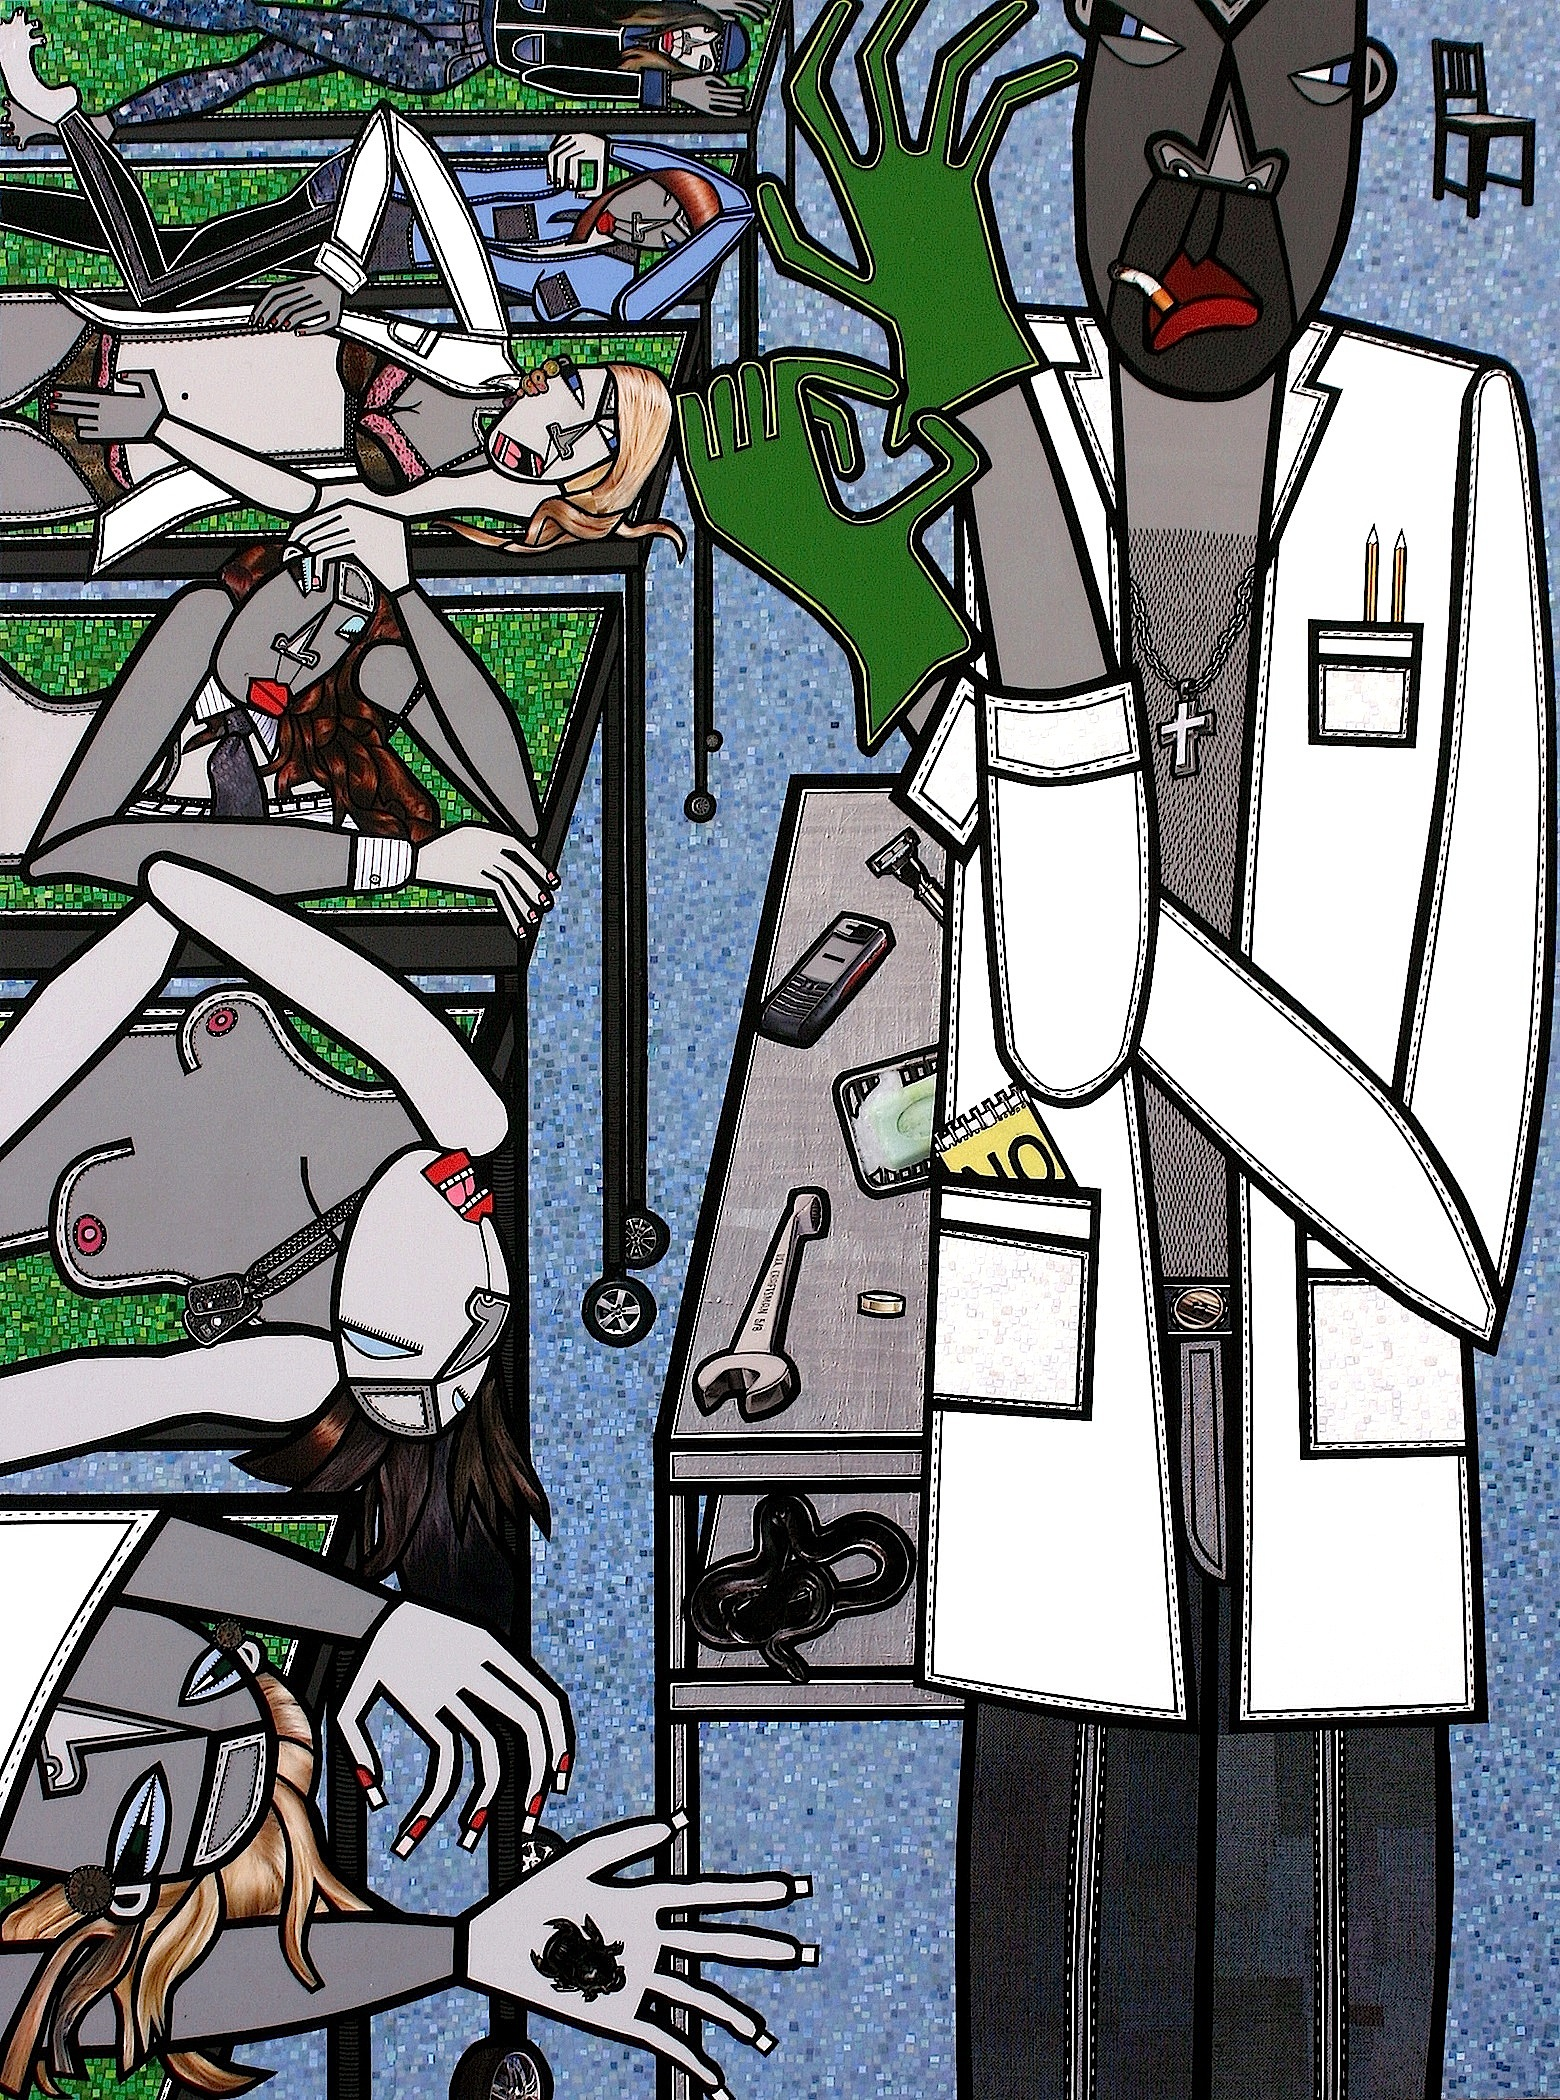 Undertaker, acrylic and paper collage on canvas, inches, 2009, private collection